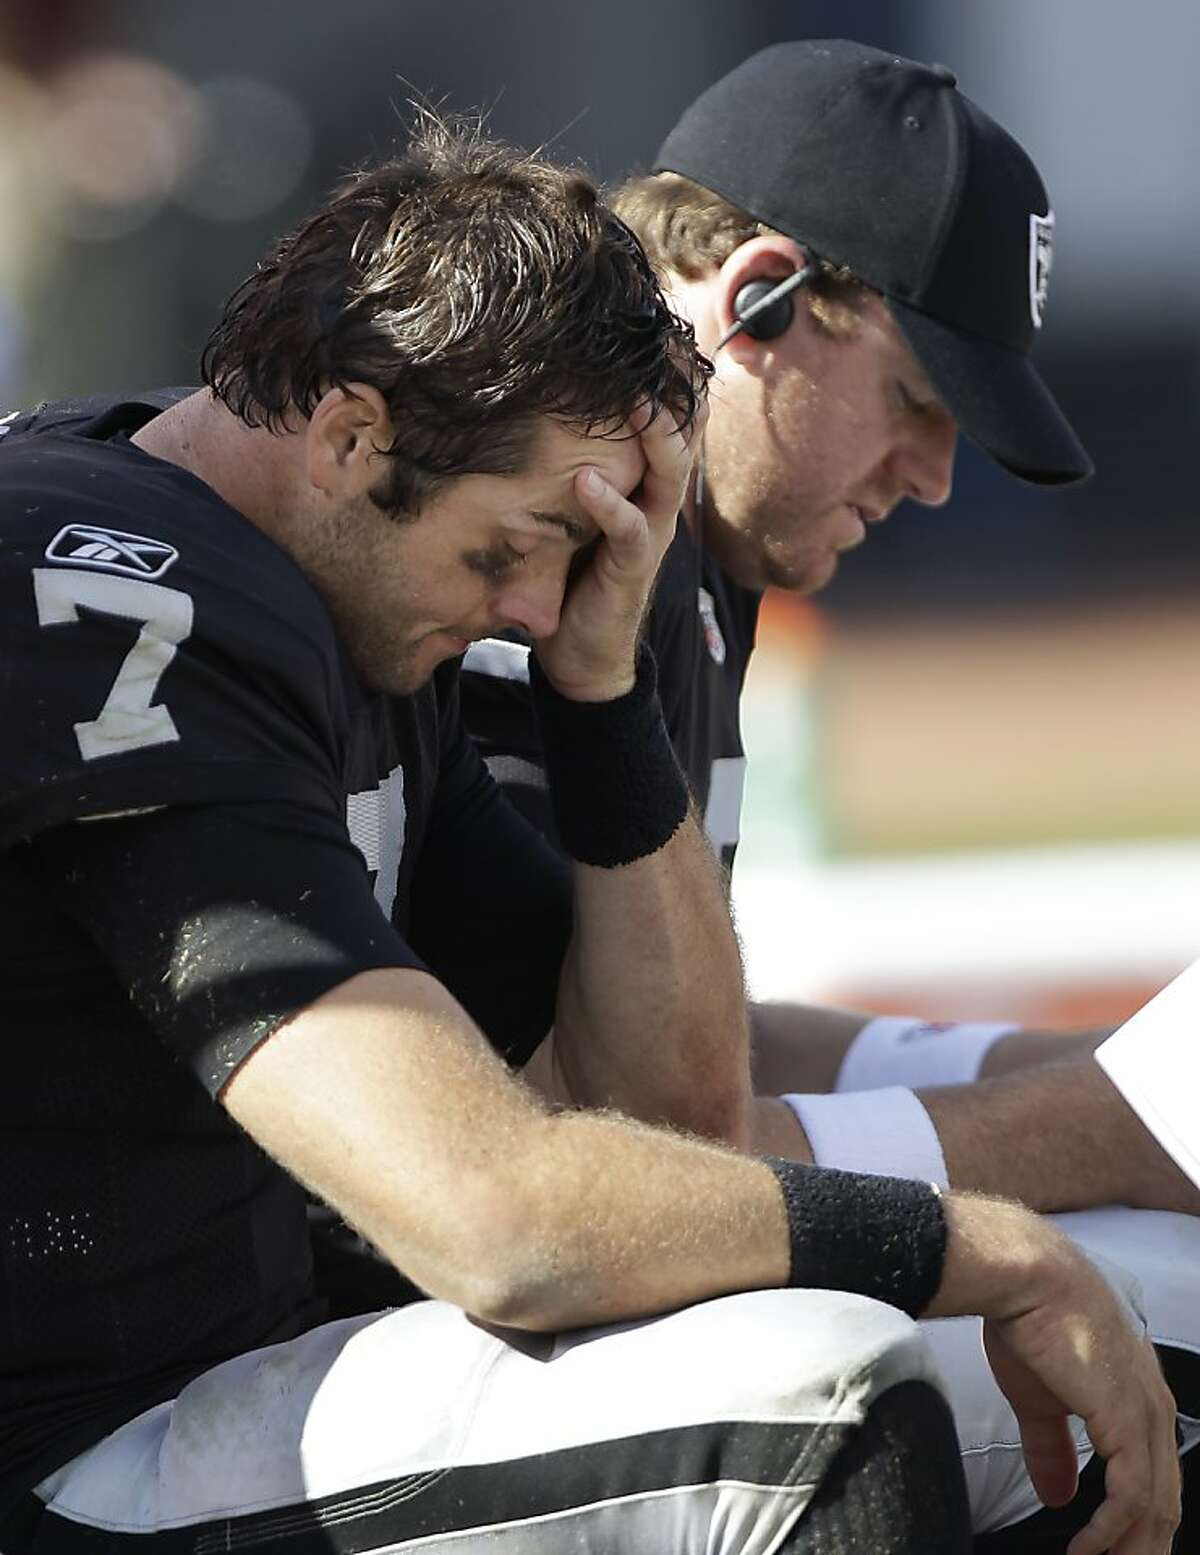 Oakland Raiders quarterback Kyle Boller (7) sits on the bench next to quarterback Carson Palmer in the second quarter of an NFL football game against the Kansas City Chiefs in Oakland, Calif., Sunday, Oct. 23, 2011. (AP Photo/Paul Sakuma)